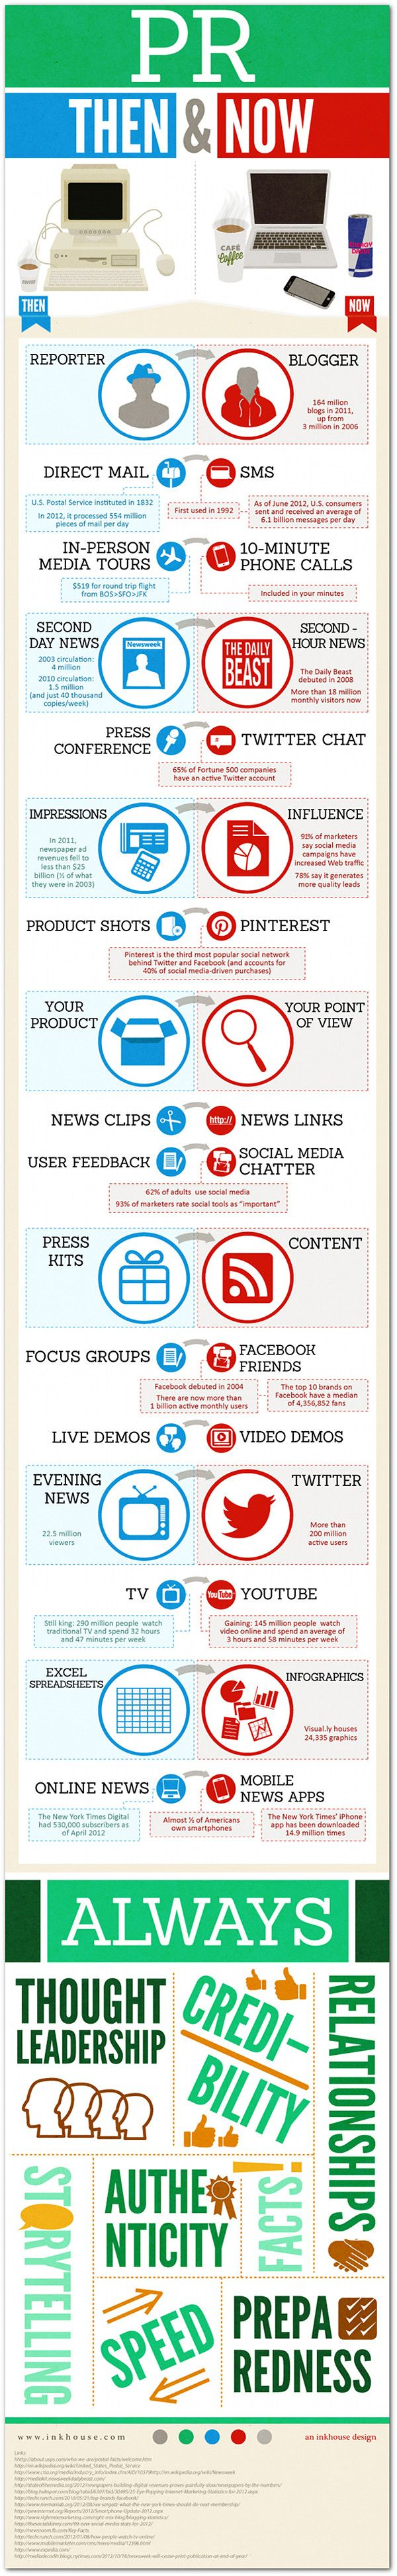 How the PR industry of yesteryear compares with today |